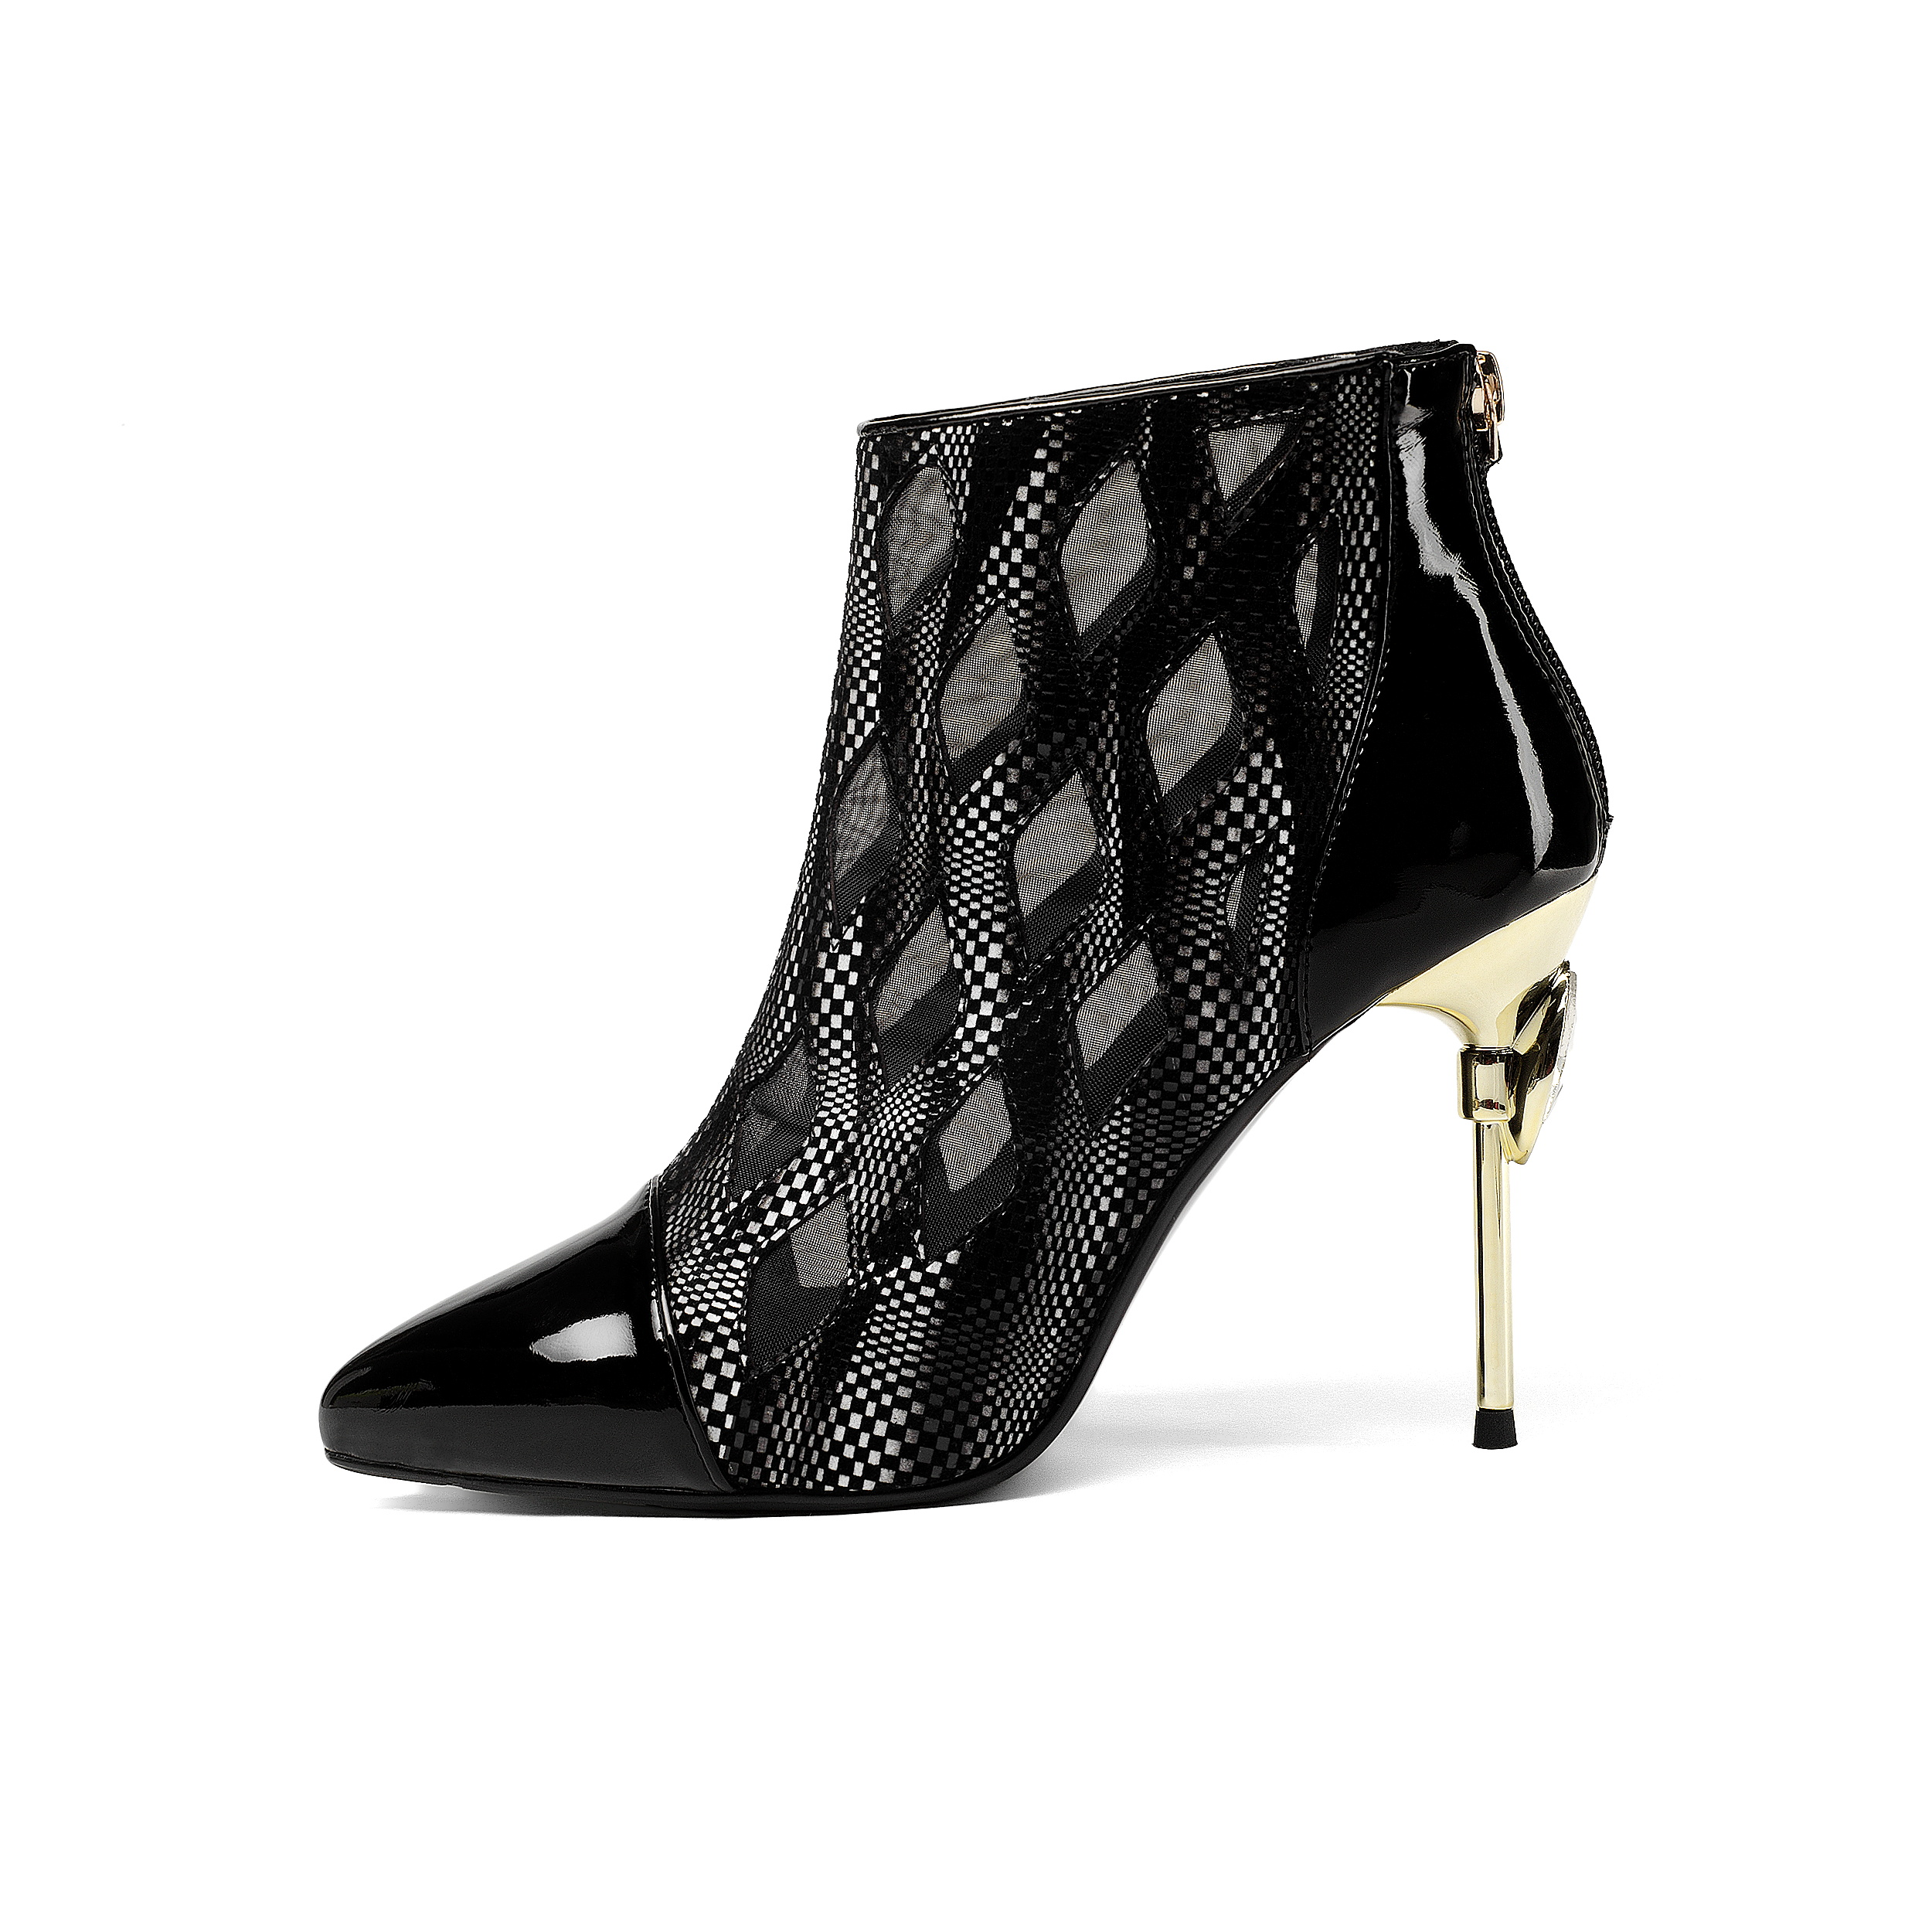 462209ad839 US  60 - Arden Furtado 2018 spring summer autumn fashion high heels 9cm  sexy ankle boots zipper pointed toe - www.ardenfurtado.com